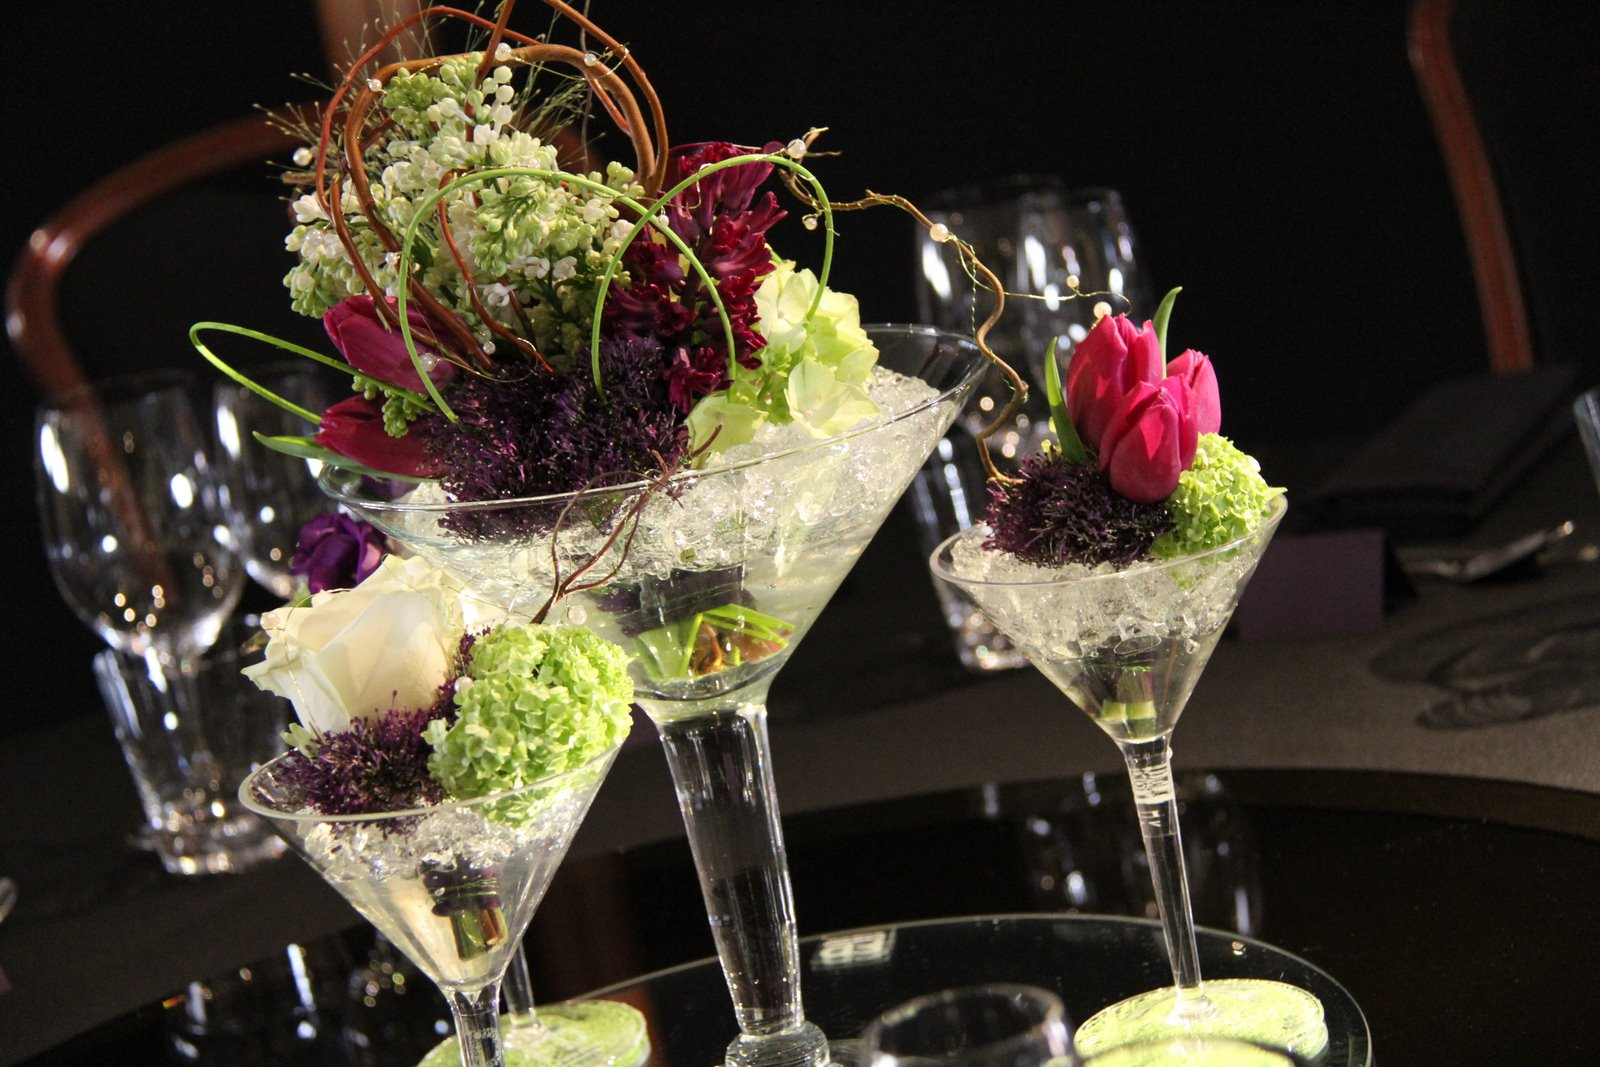 Flower design table centrepieces mini martini glasses table design a selection of oversized martini glasses in the centre of the table reviewsmspy